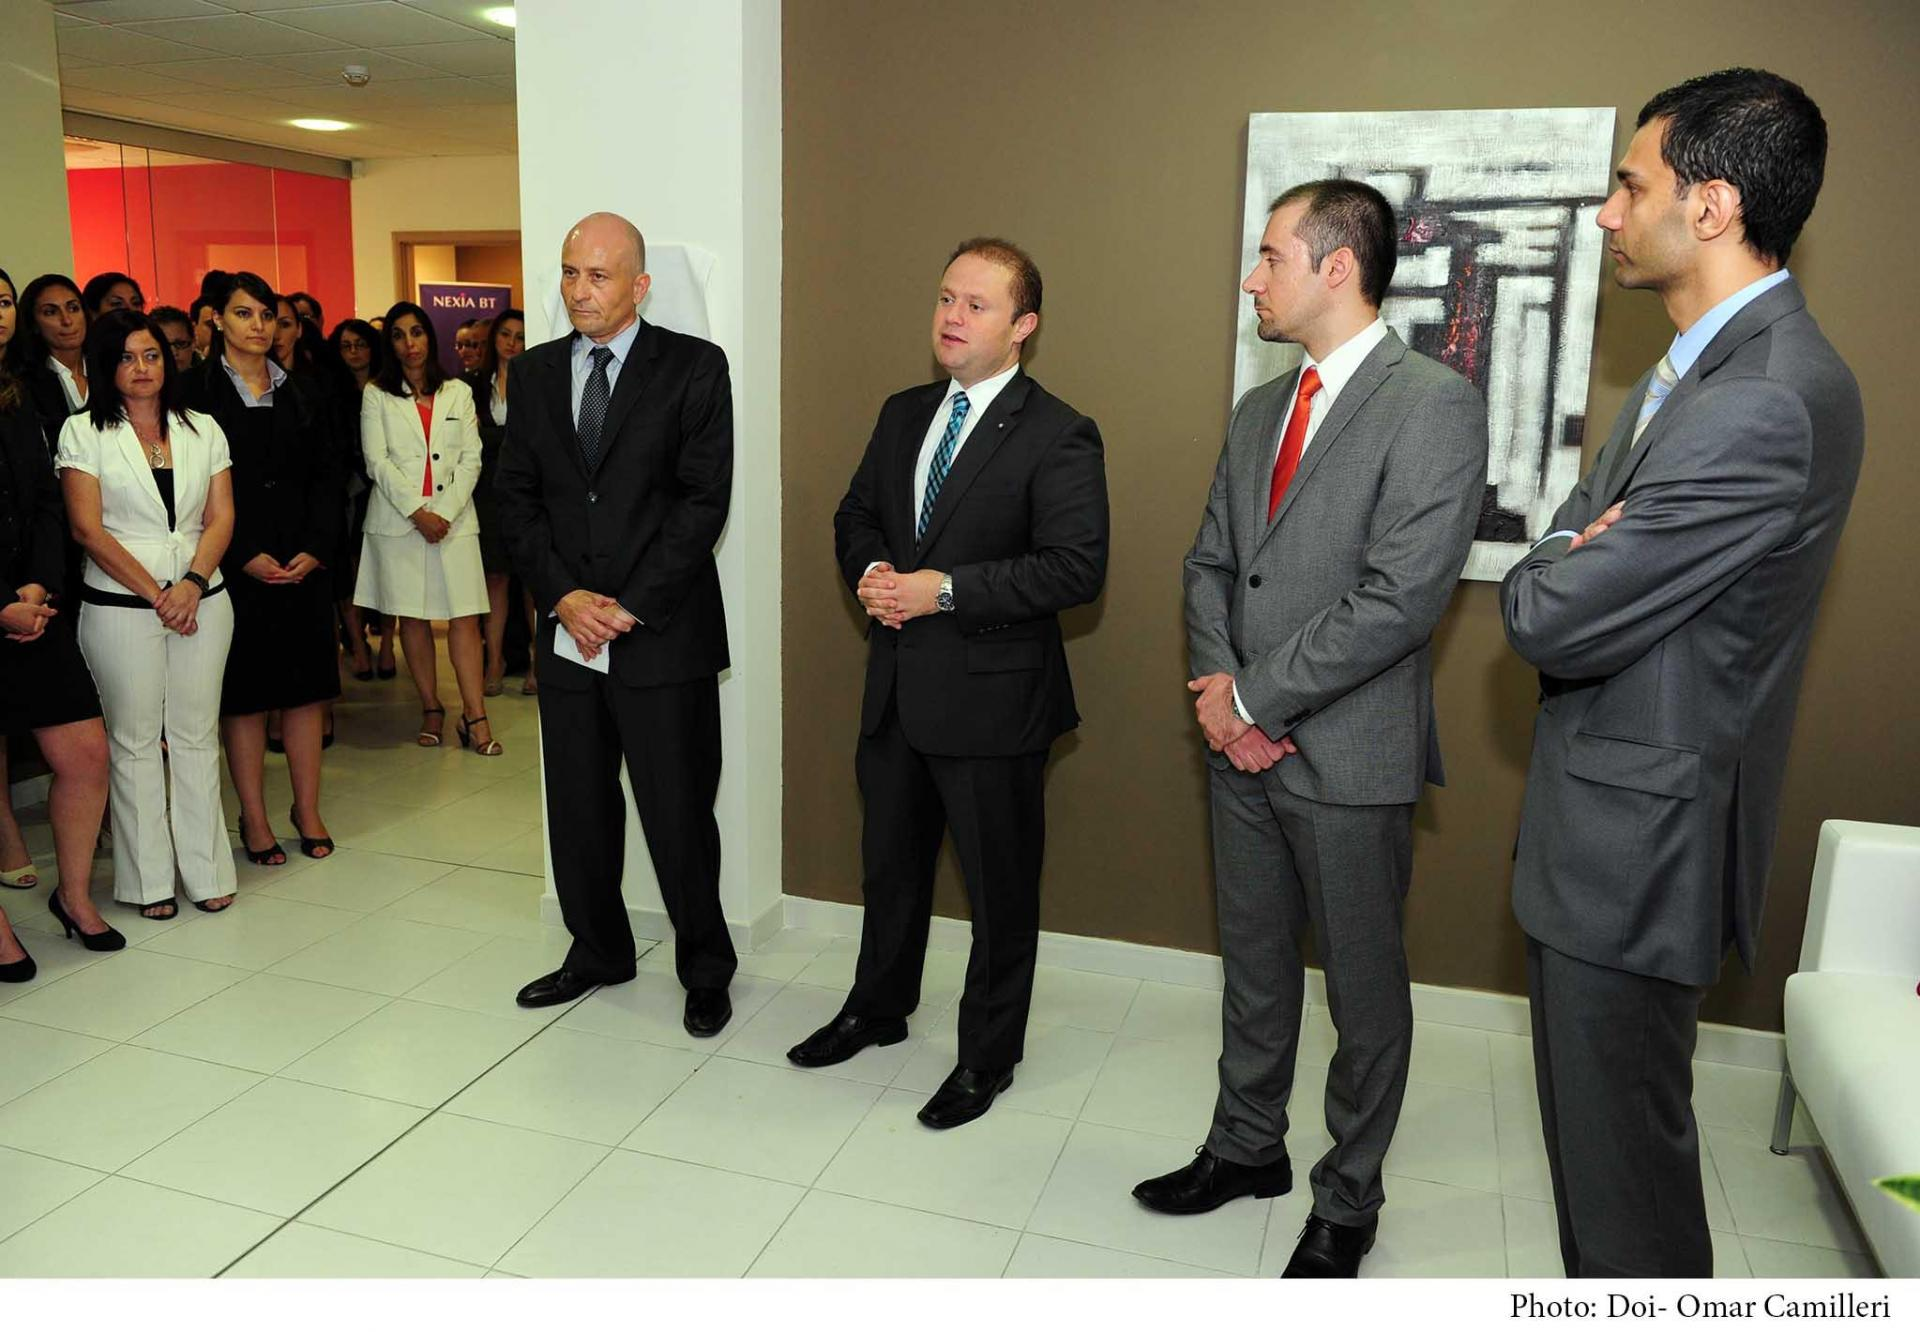 Joseph Muscat paying a visit to Nexia BT's offices in June 2013.